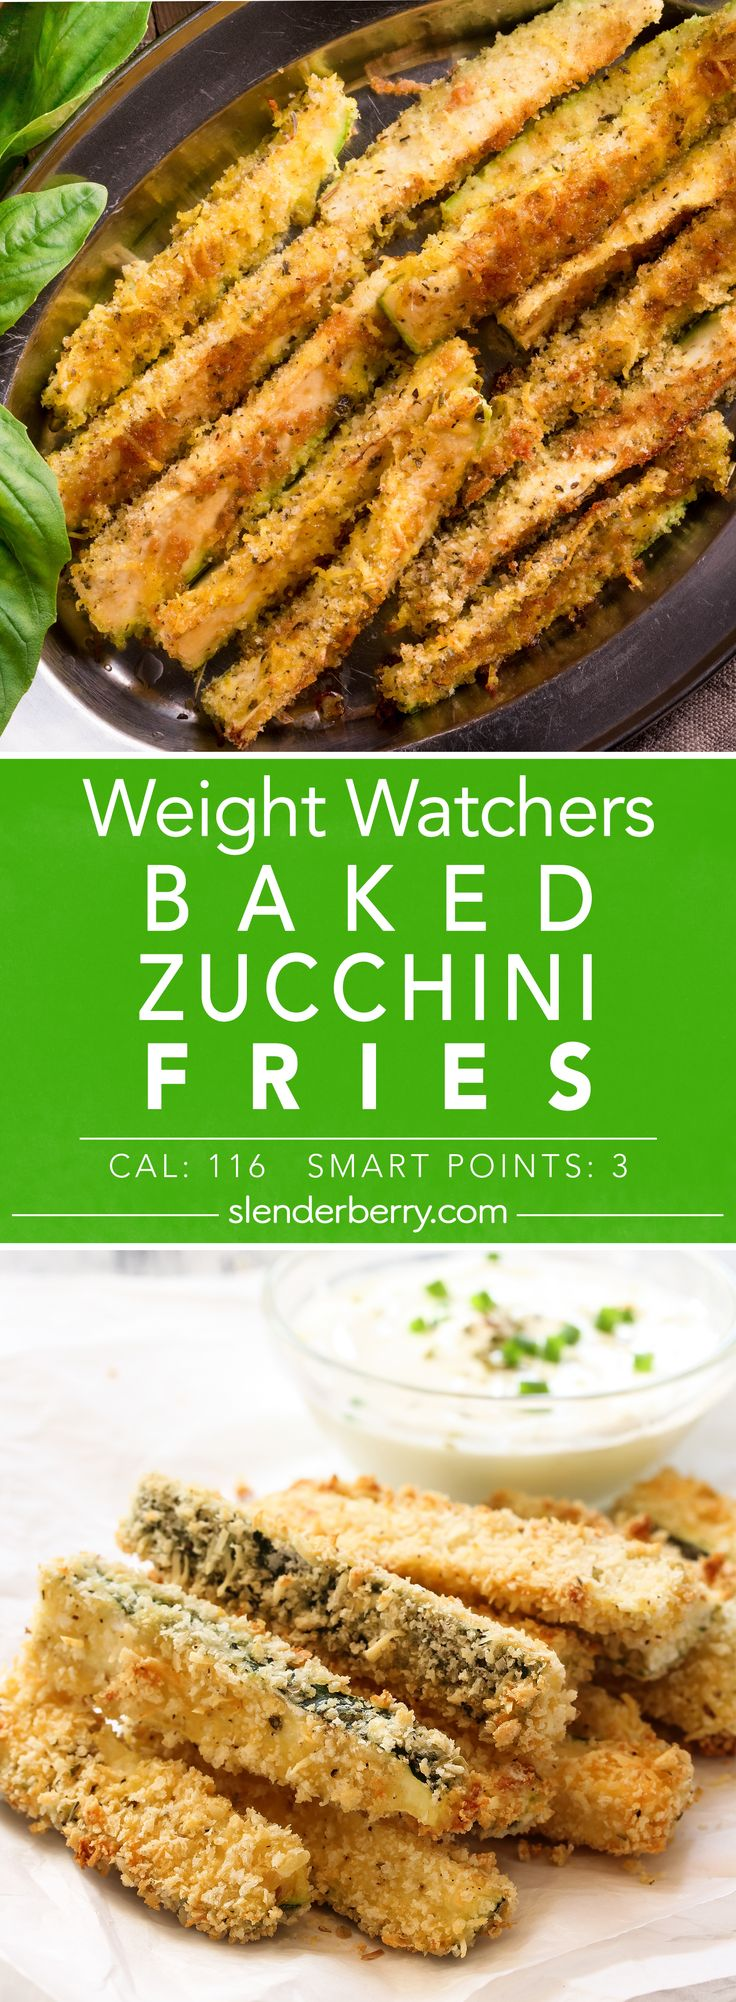 Weight Watchers Baked Zucchini Fries Recipe - 3 Smart Points 116 Calories (Vegetable Recipes Weight Watchers)